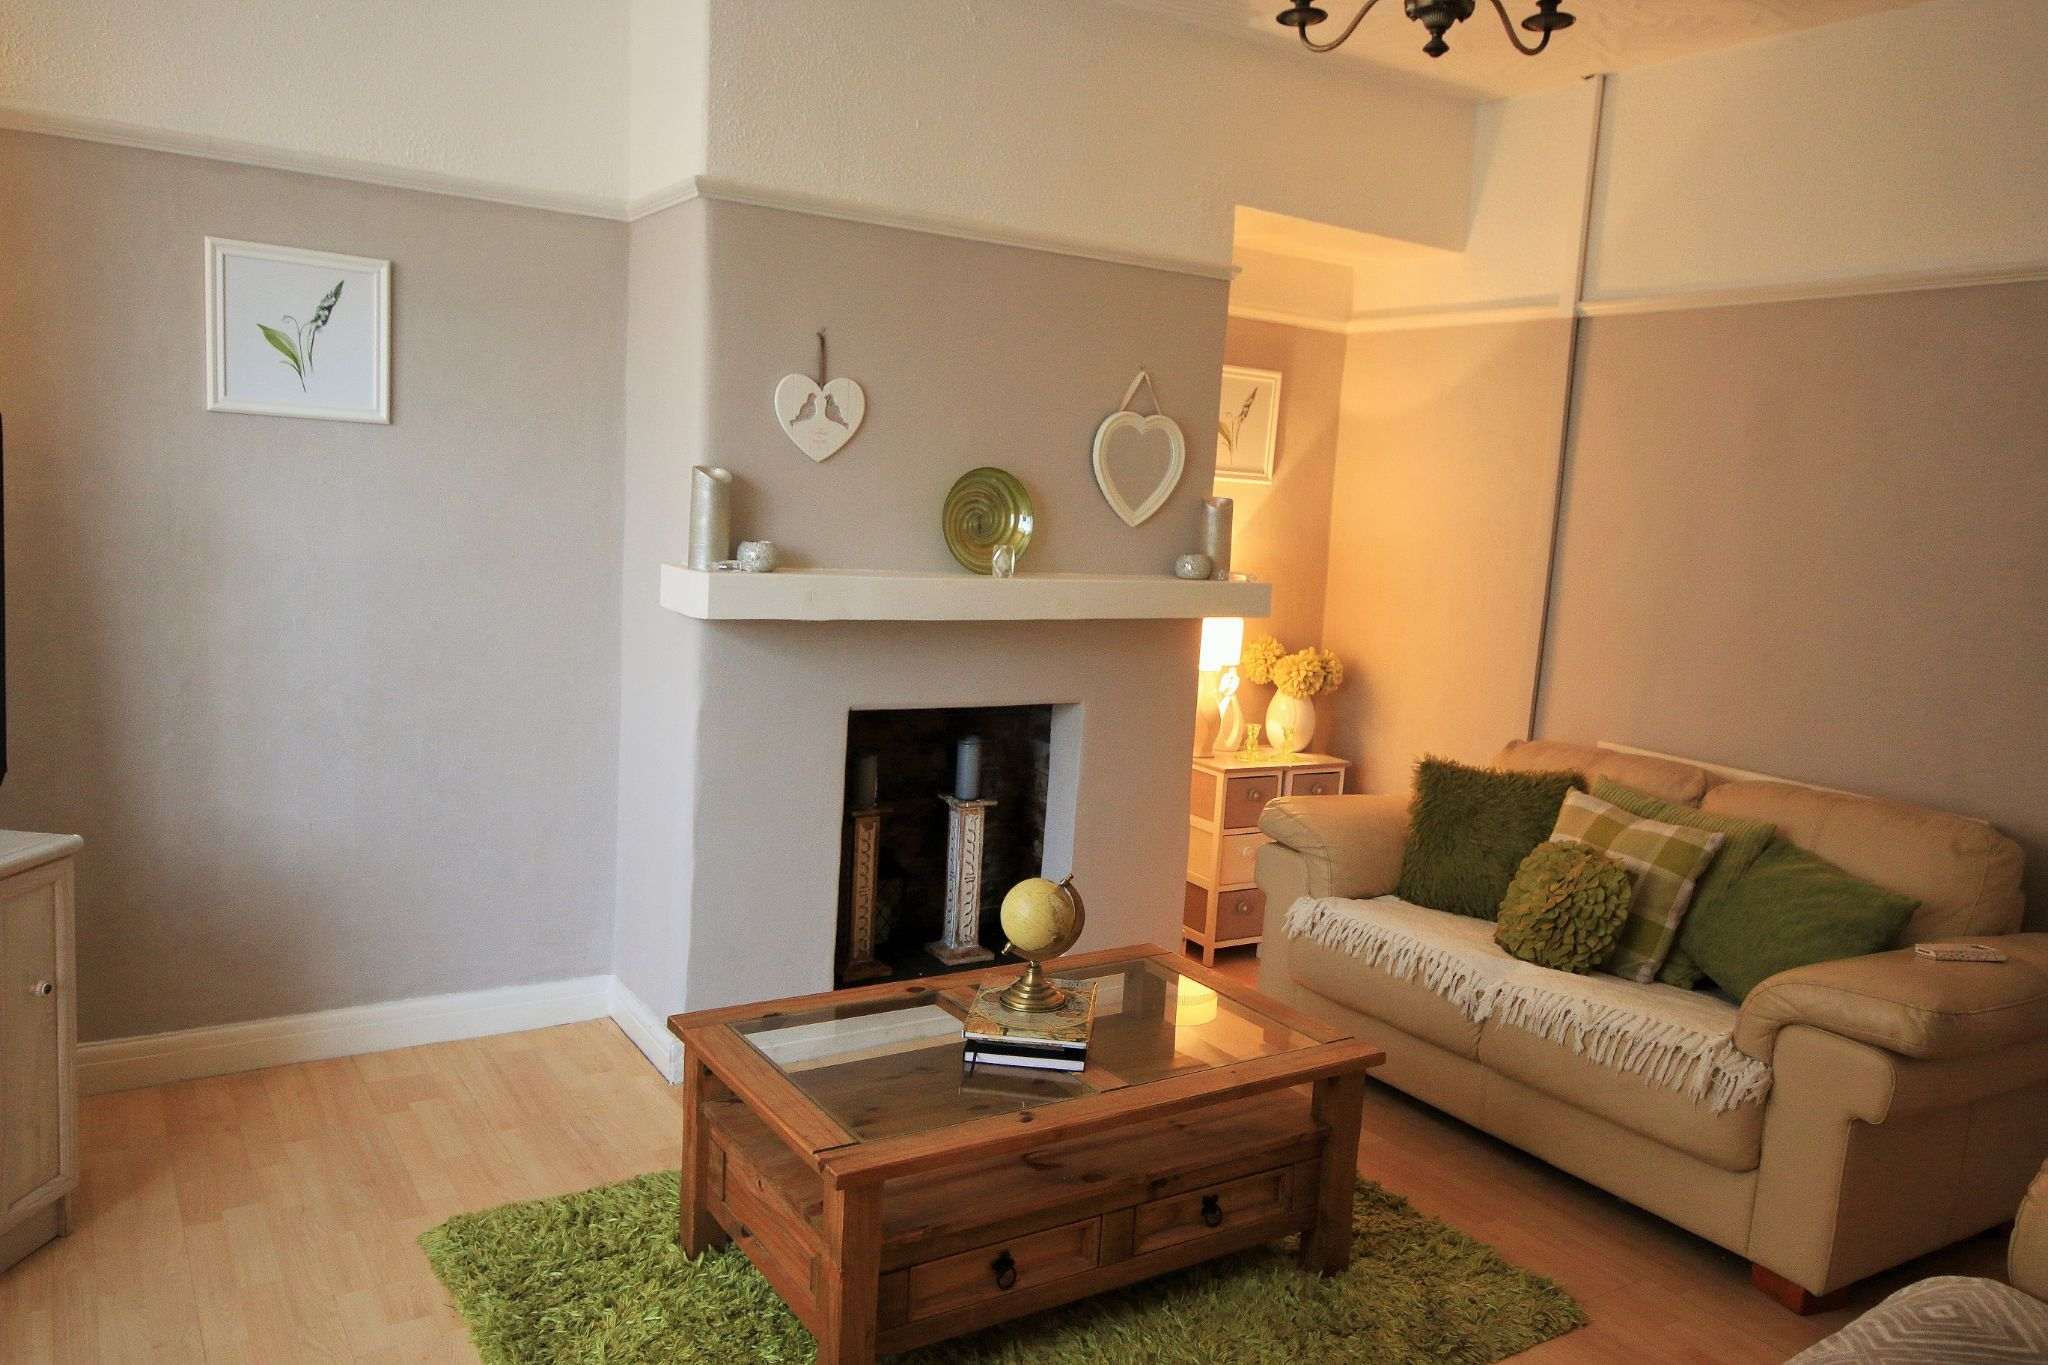 2 Bedroom End Terraced House For Sale - Photograph 3